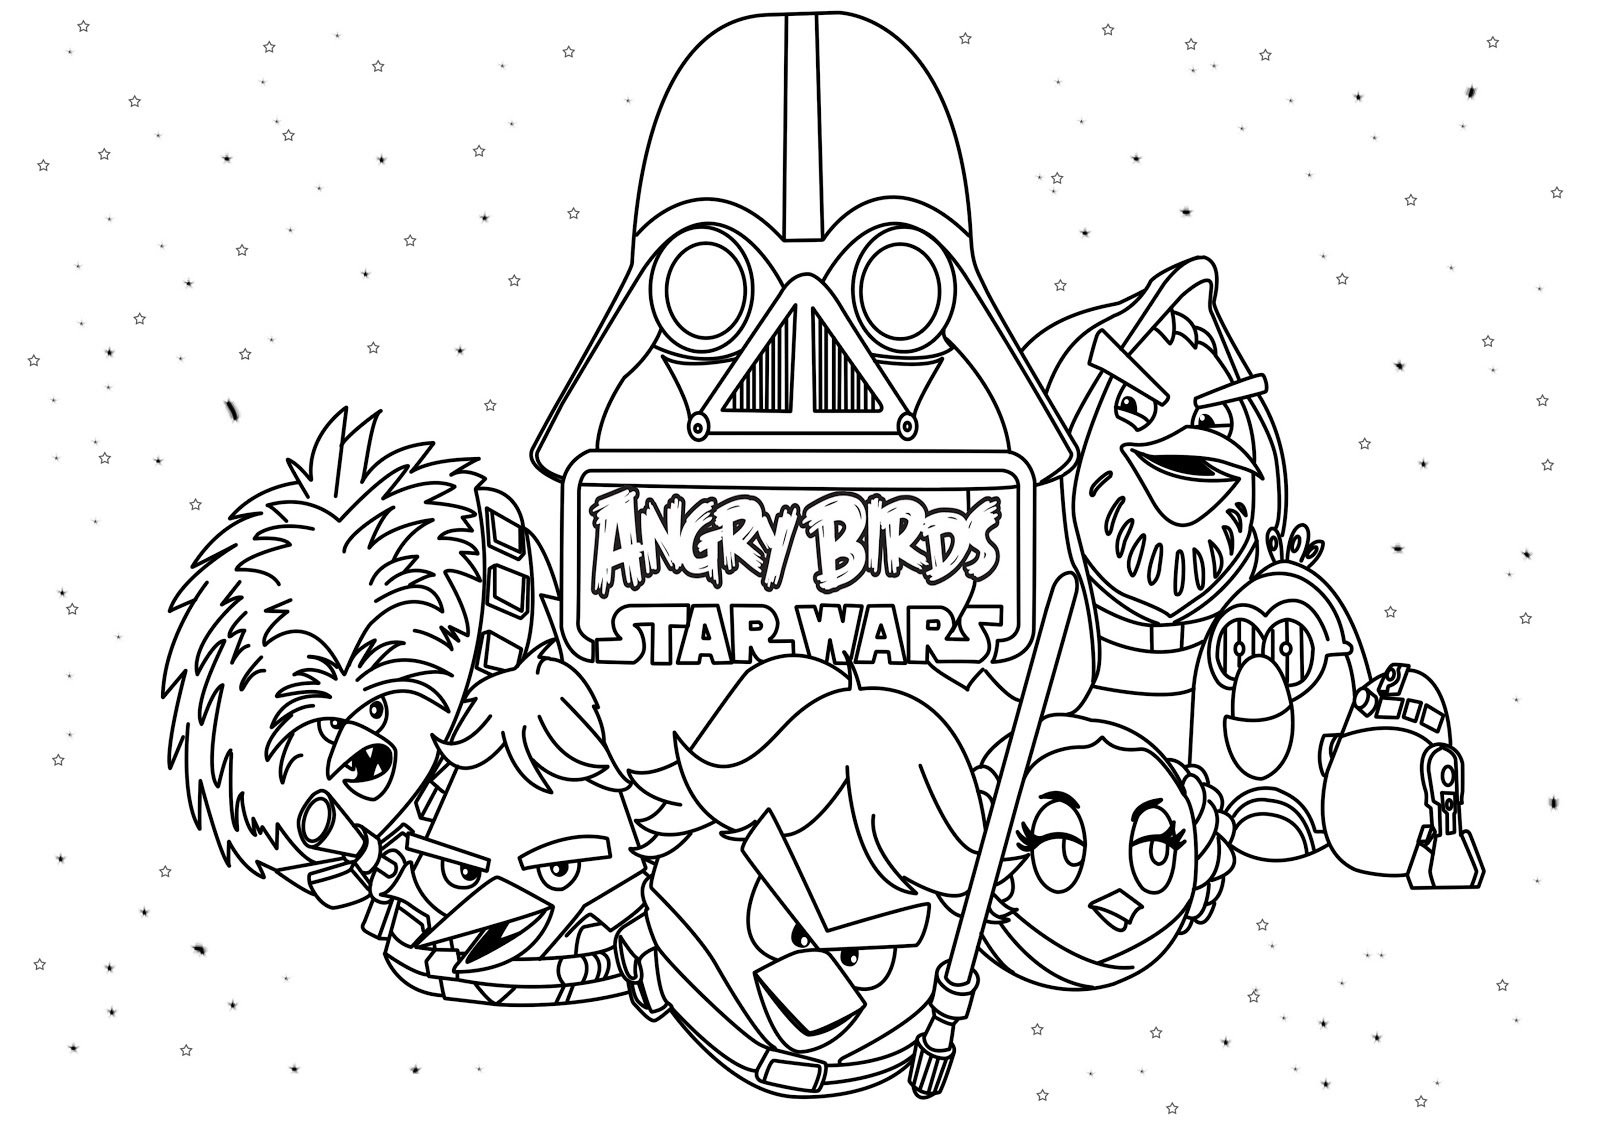 angry birds star wars coloring pages 4